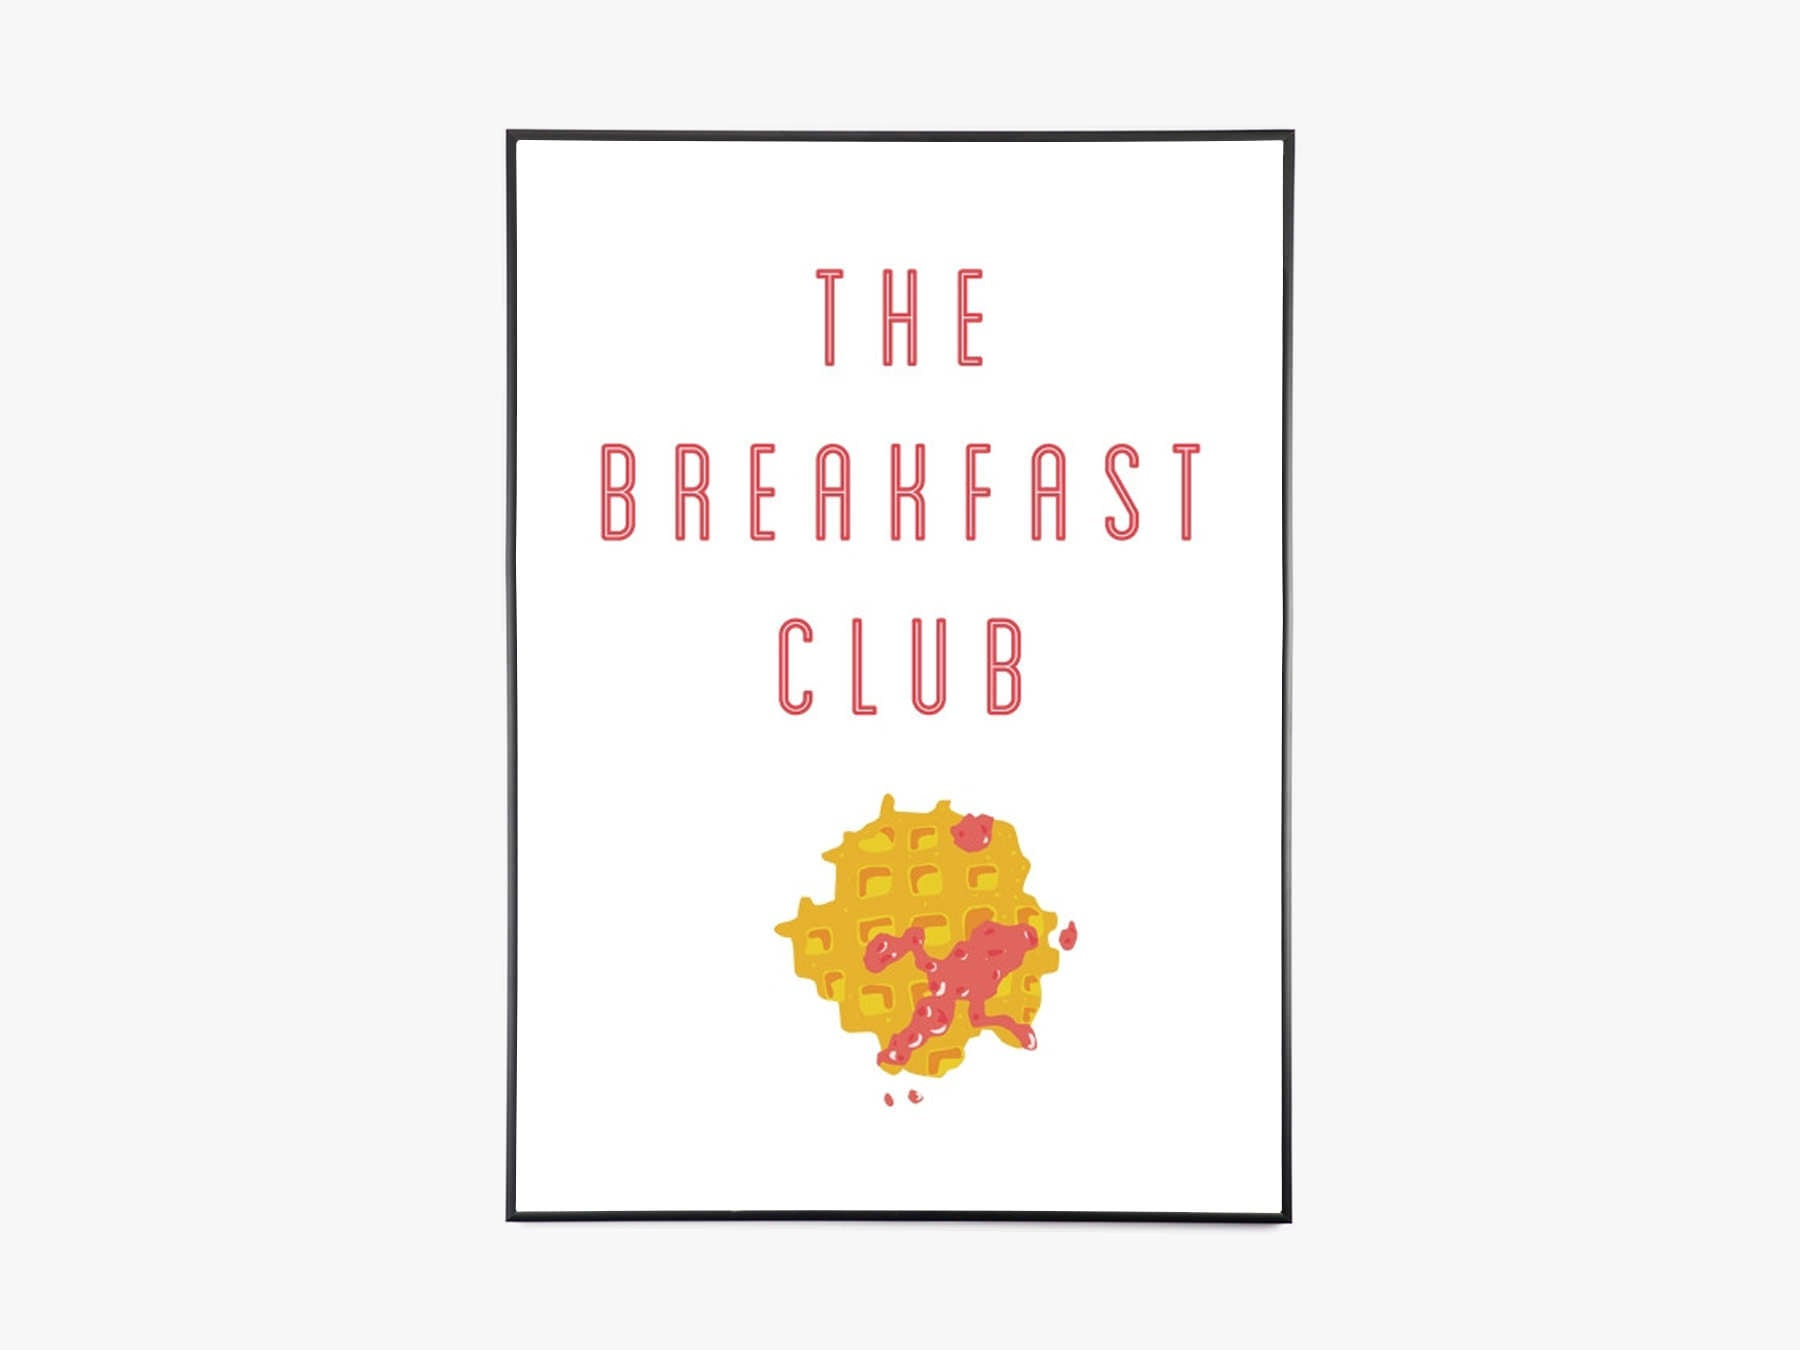 THE BREAKFAST CLUB fra STRYHN&TORM